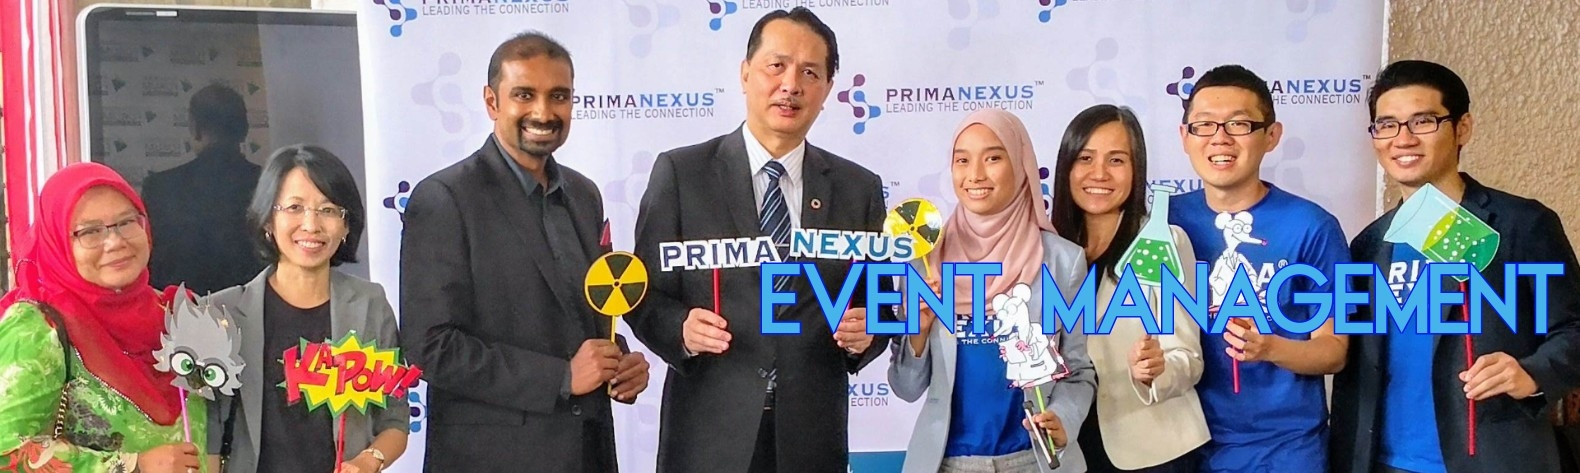 http://primanexus.com.my/events